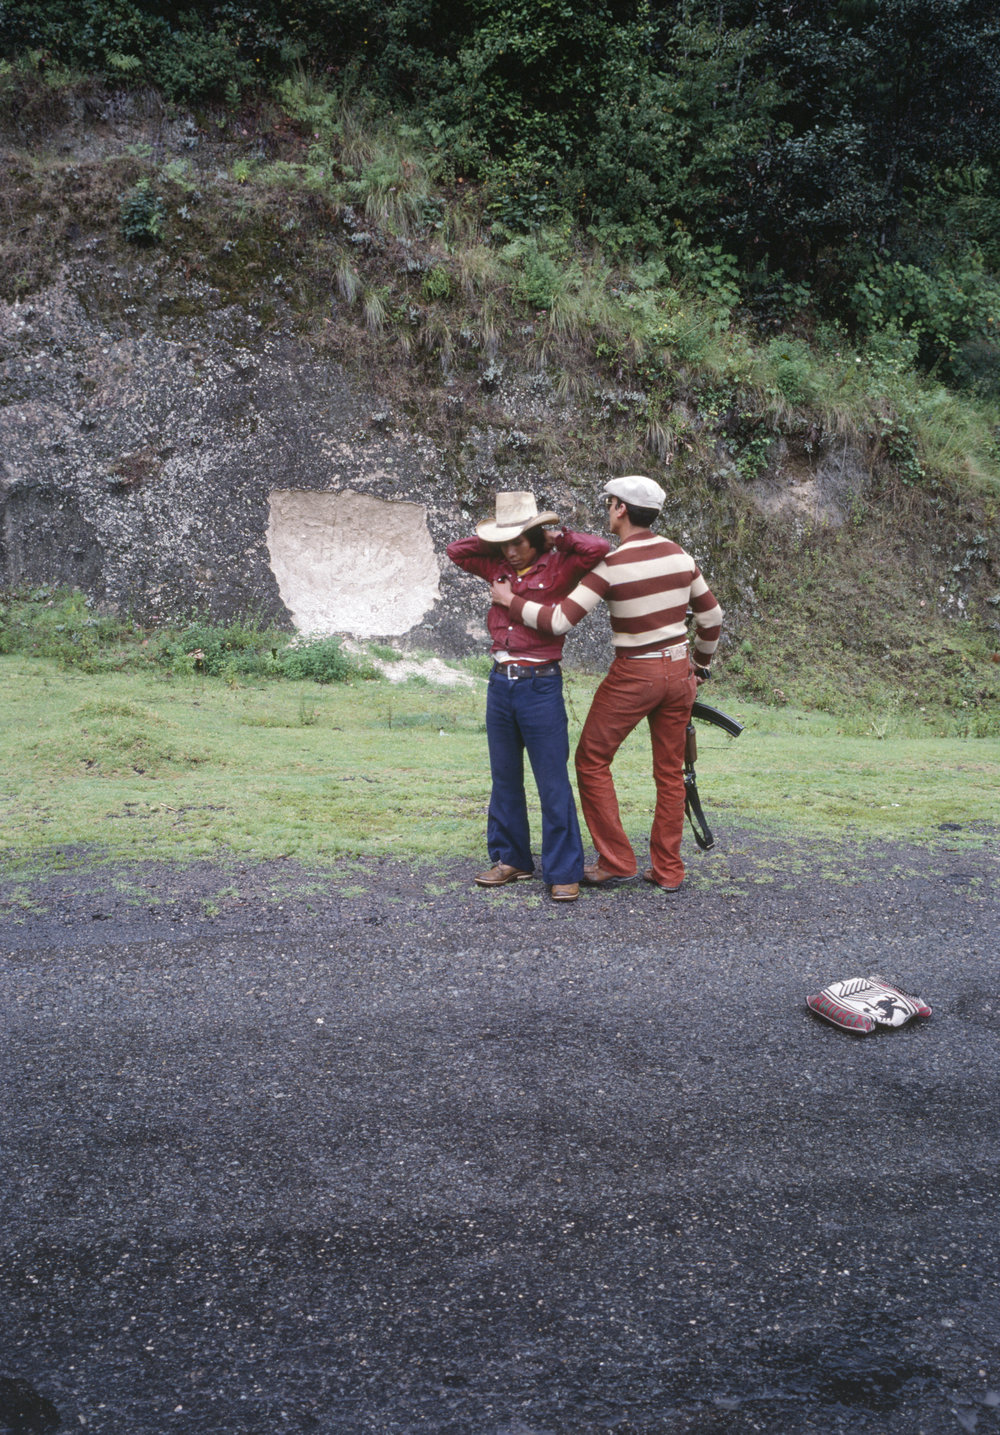 A Guatemalan security official, right, searches a civilian September 1, 1982 in rural Huehuetenango, Guatemala. Government security forces trained by U.S. military advisors, were organized by the Guatemalan army to defend villages against armed attacks by leftist guerrillas such as the Guerrilla Army of the Poor, EGP, the most active group fighting the Guatemalan military government during the civil war from 1960 to 1996.